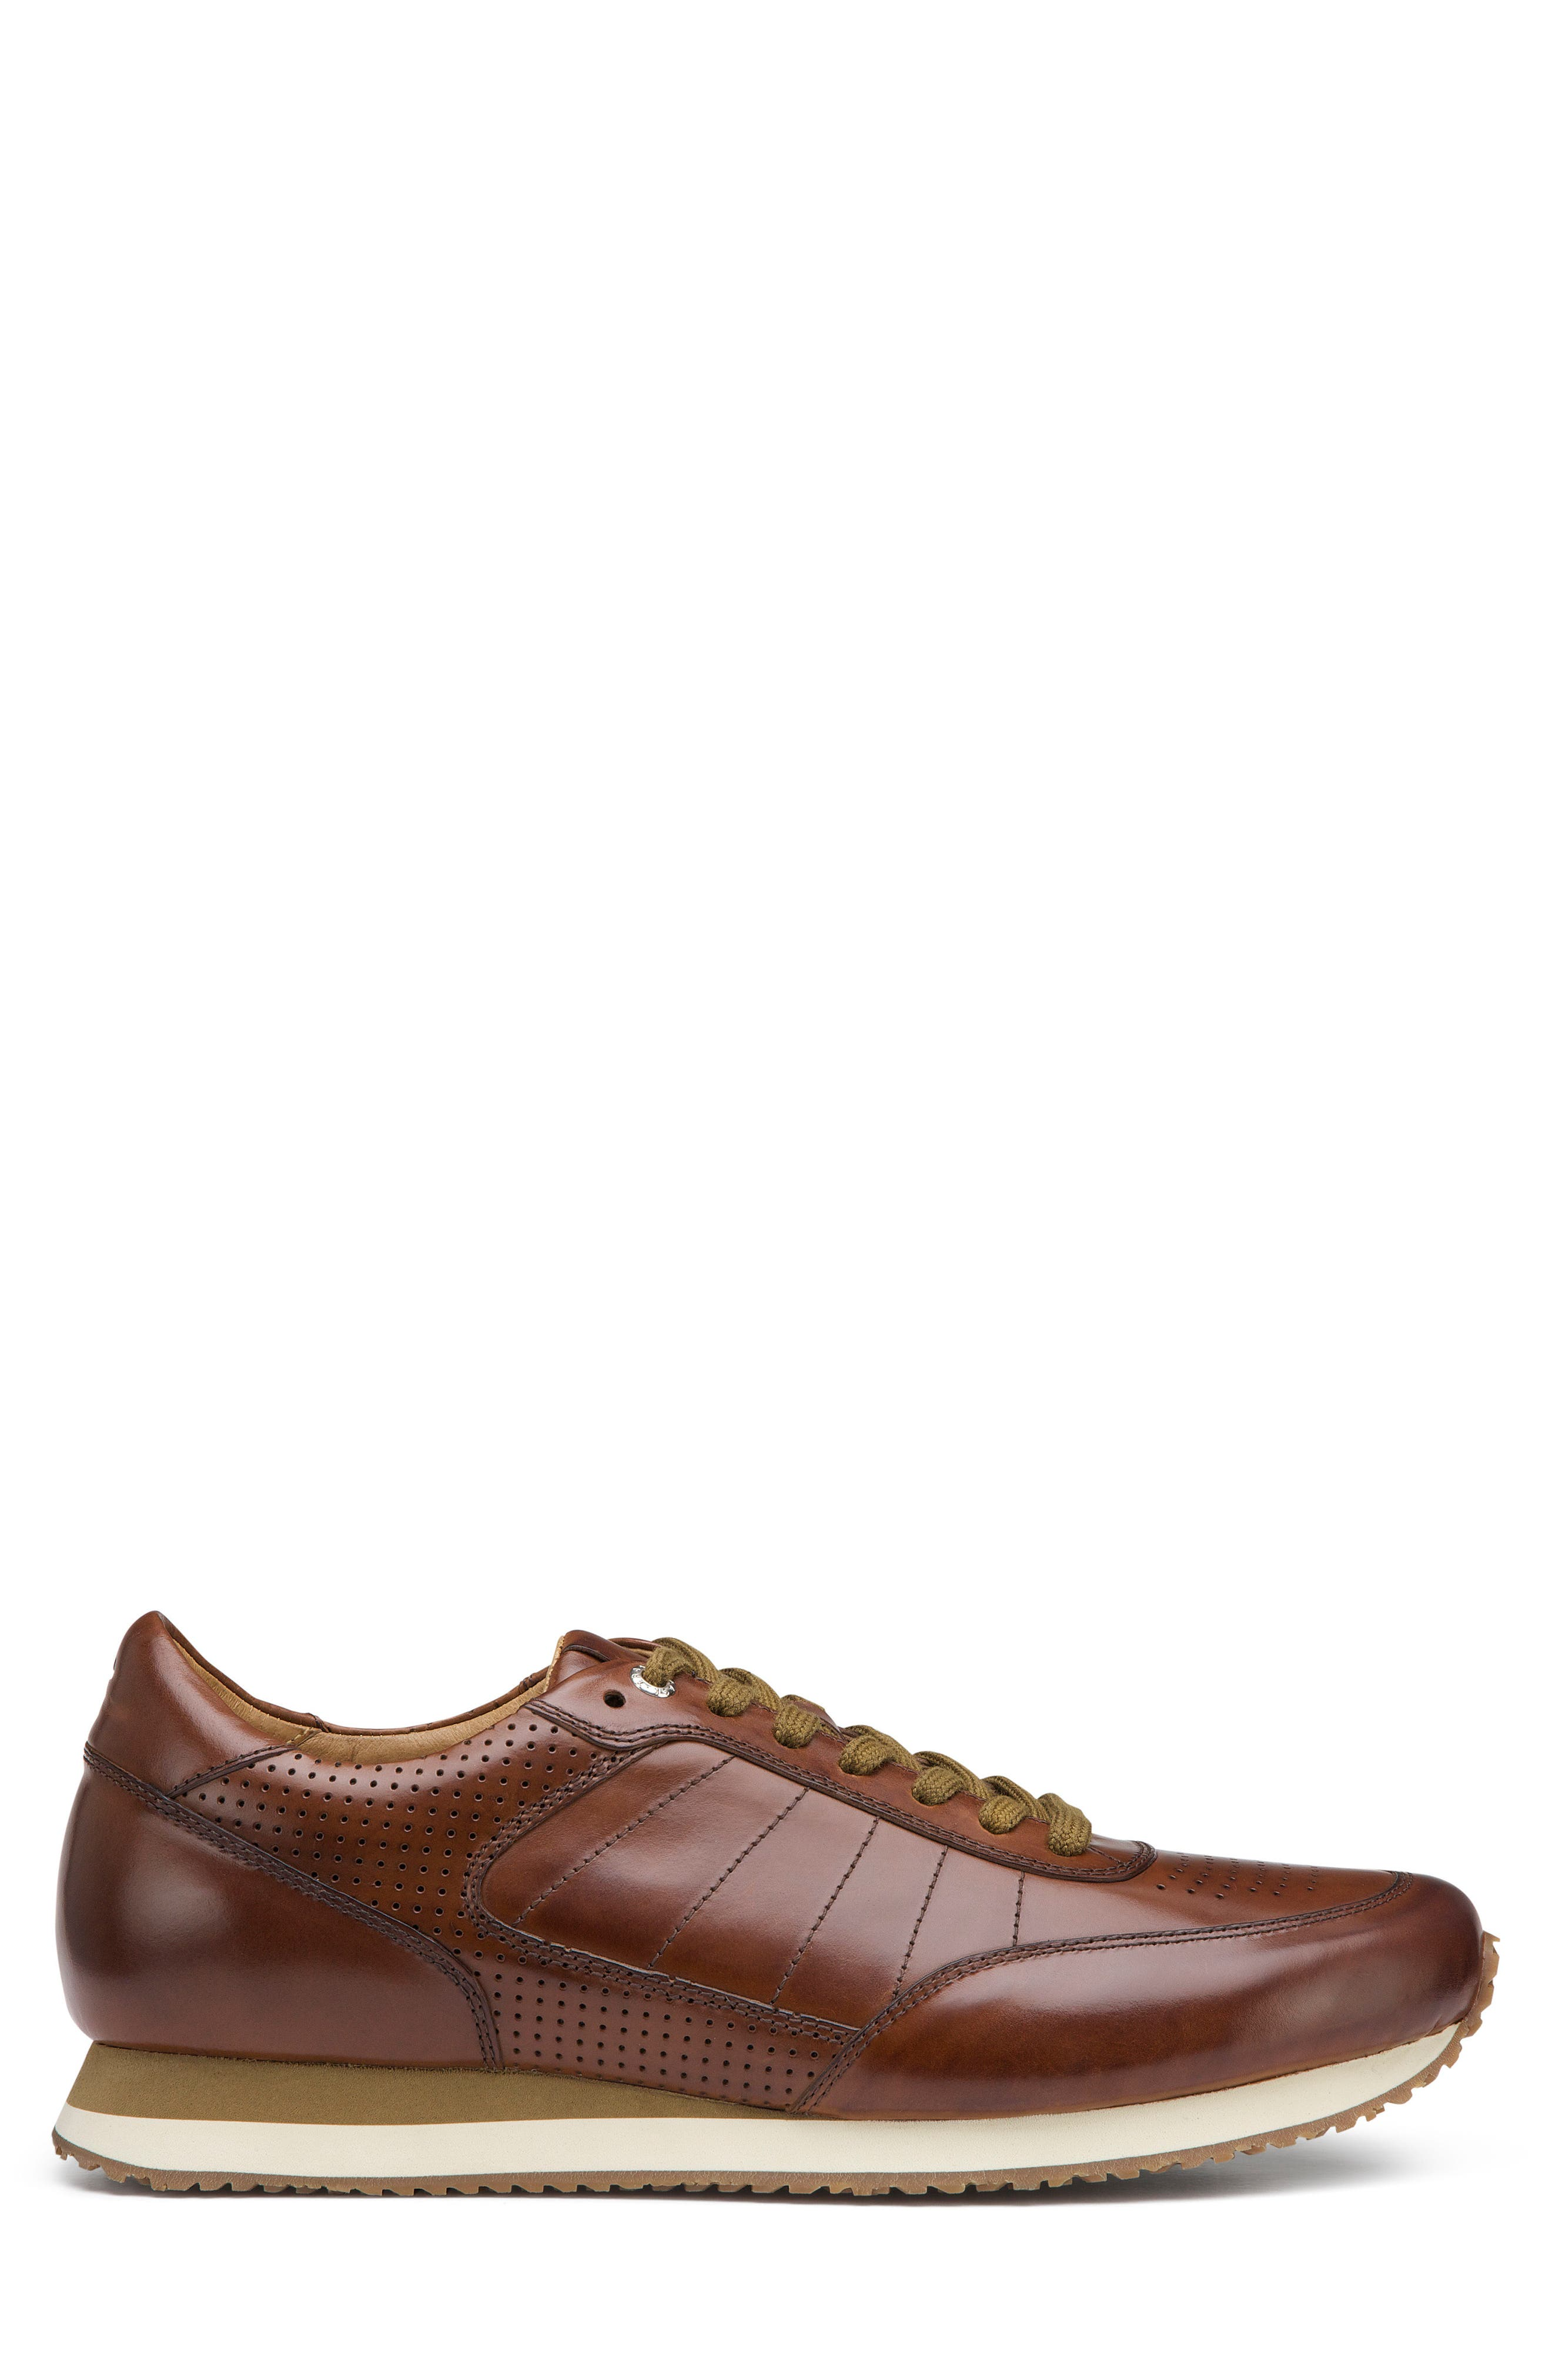 Aiden Sneaker,                             Alternate thumbnail 3, color,                             Brown Leather